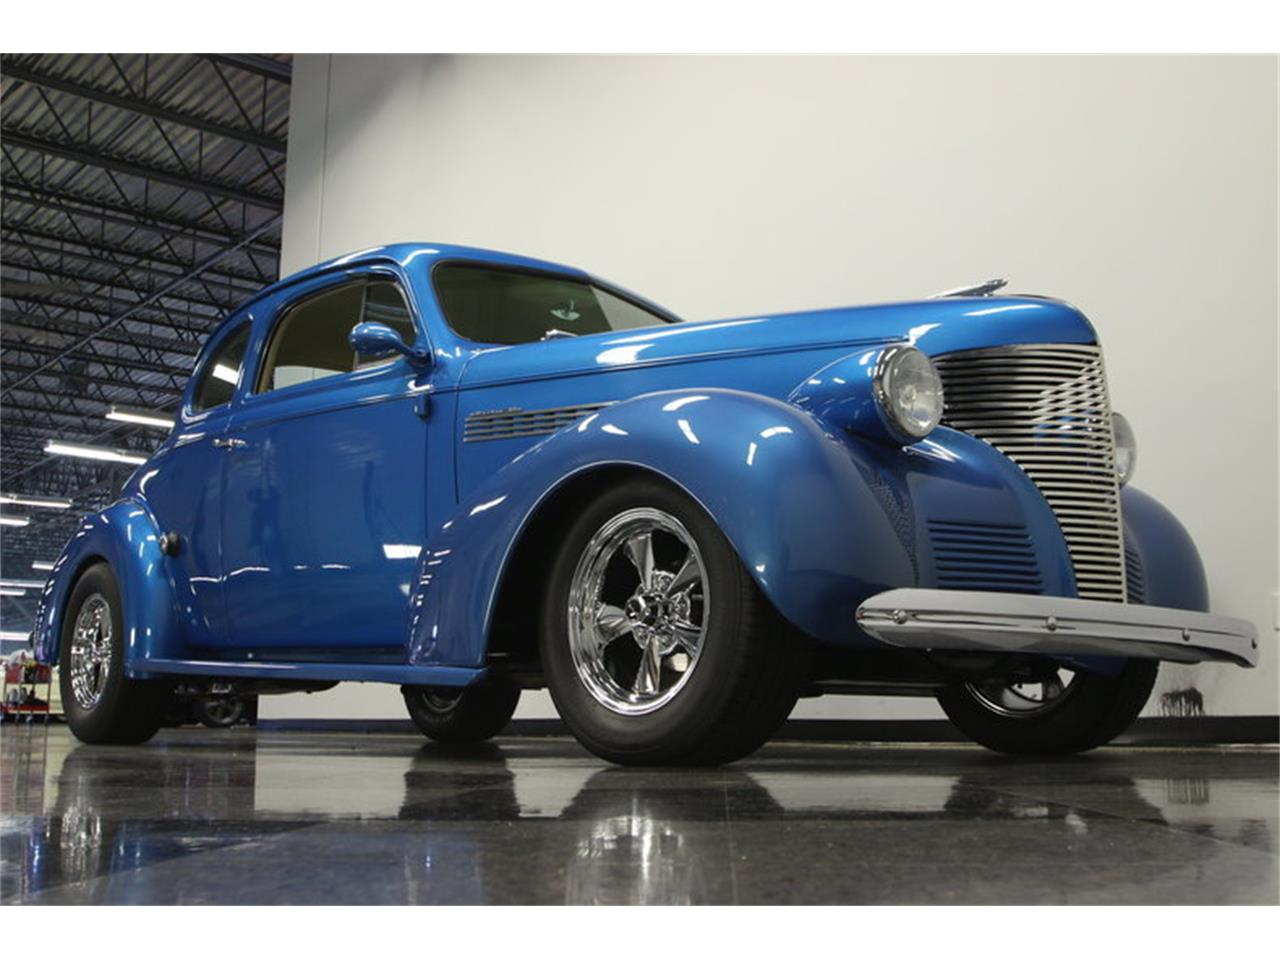 Large Picture of Classic 1939 Chevrolet Business Coupe located in Lutz Florida - $29,995.00 Offered by Streetside Classics - Tampa - MADX